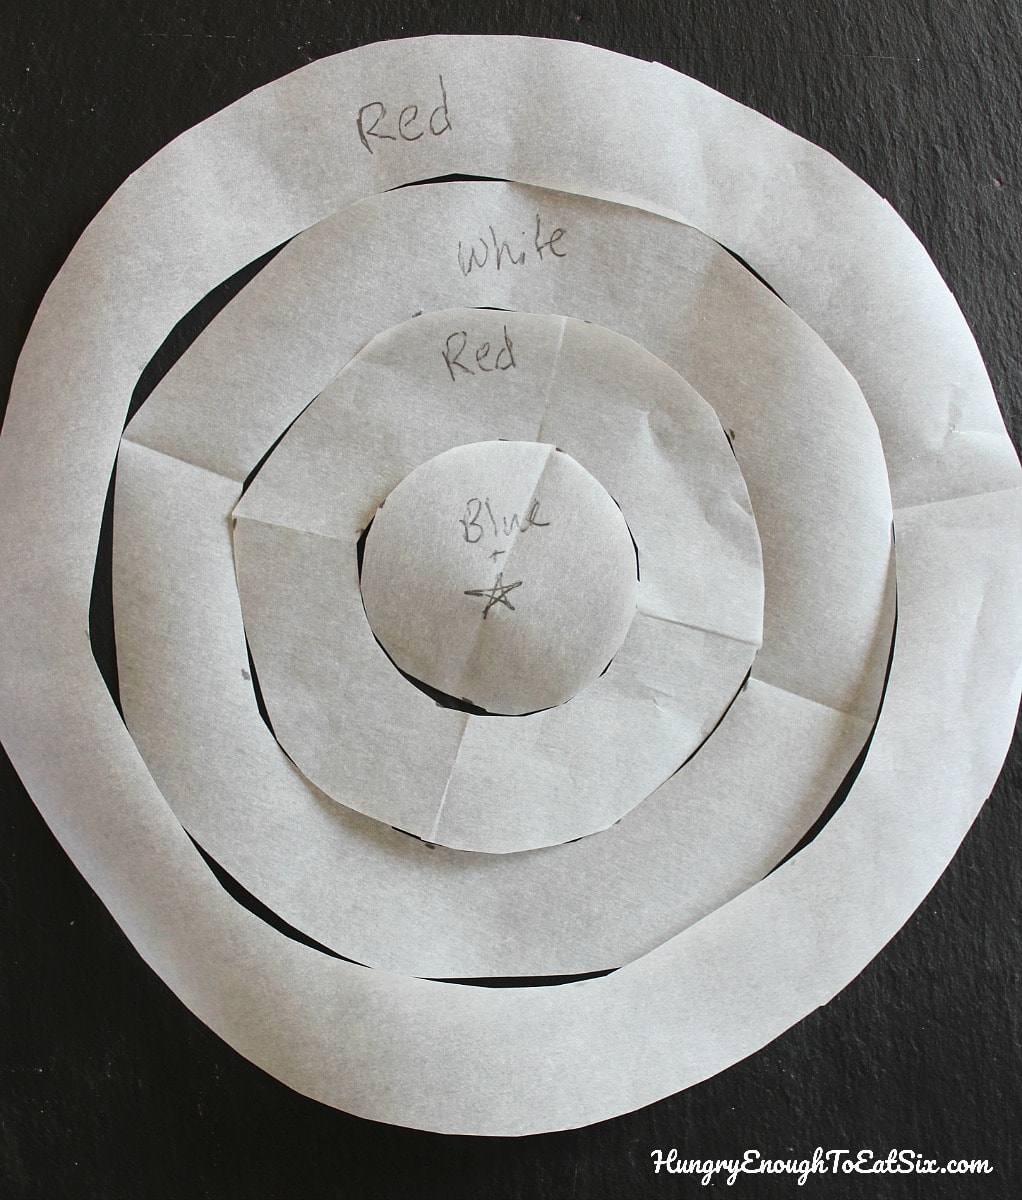 Concentric circle cutouts arranged inside one another